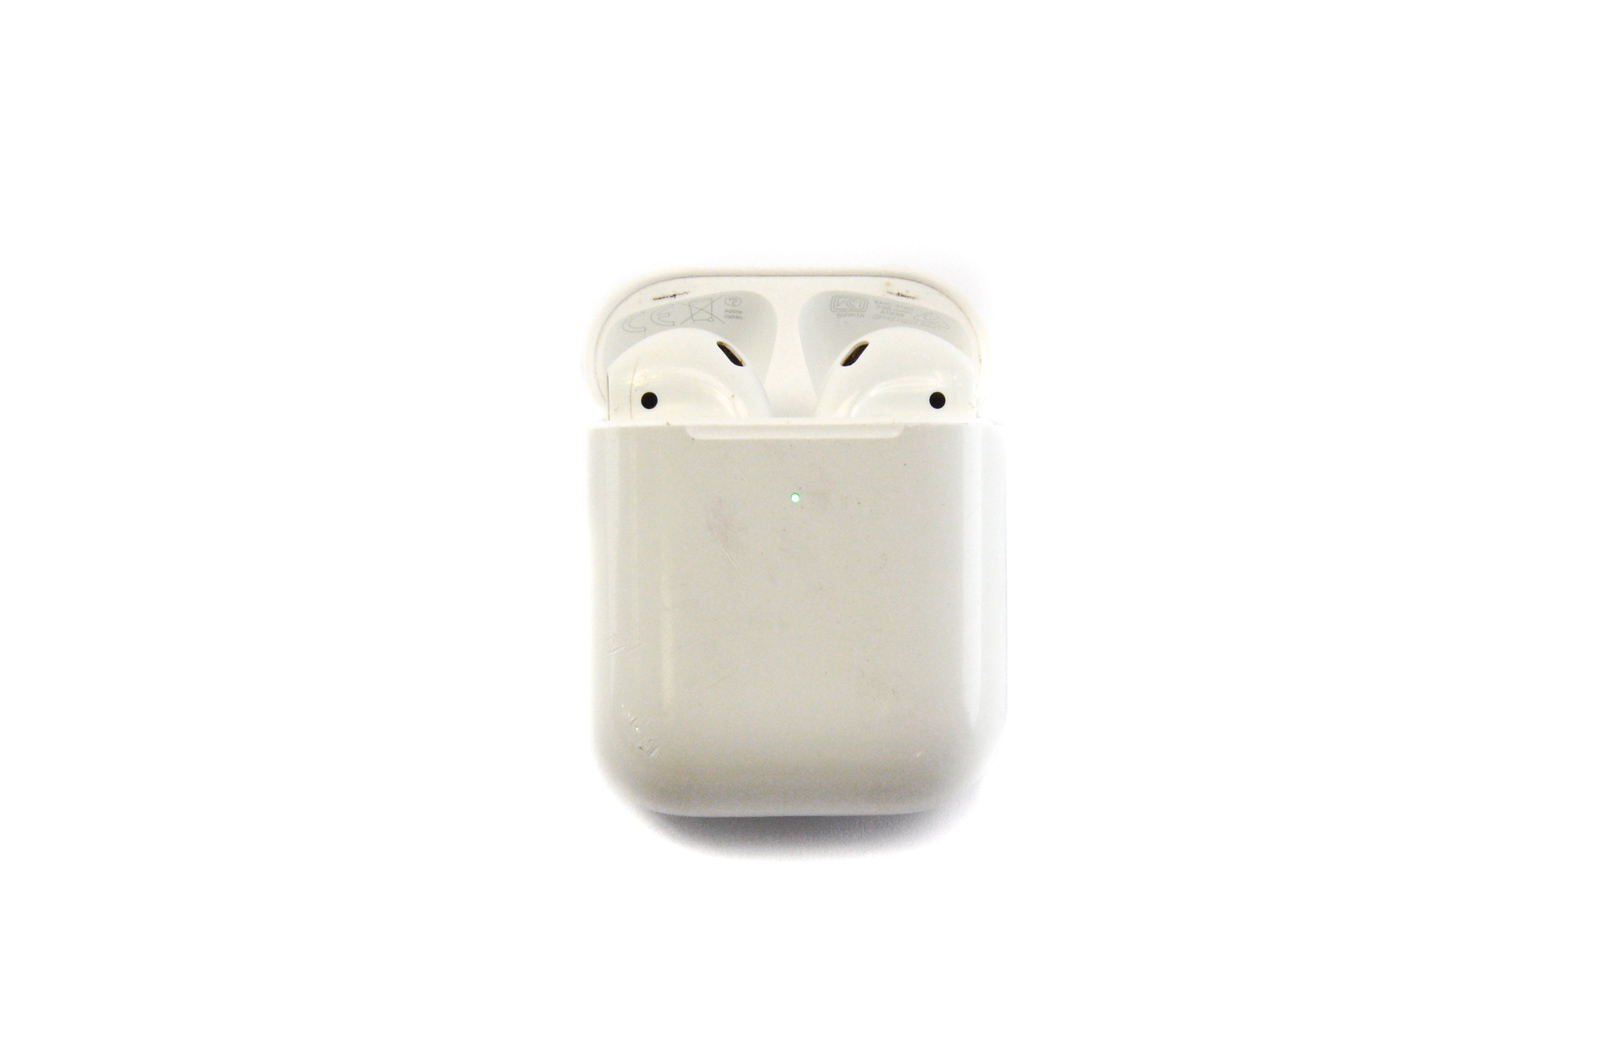 Apple Airpods 2nd Gen A2031/A2032 with Charging Case A1938 Wireless Charging